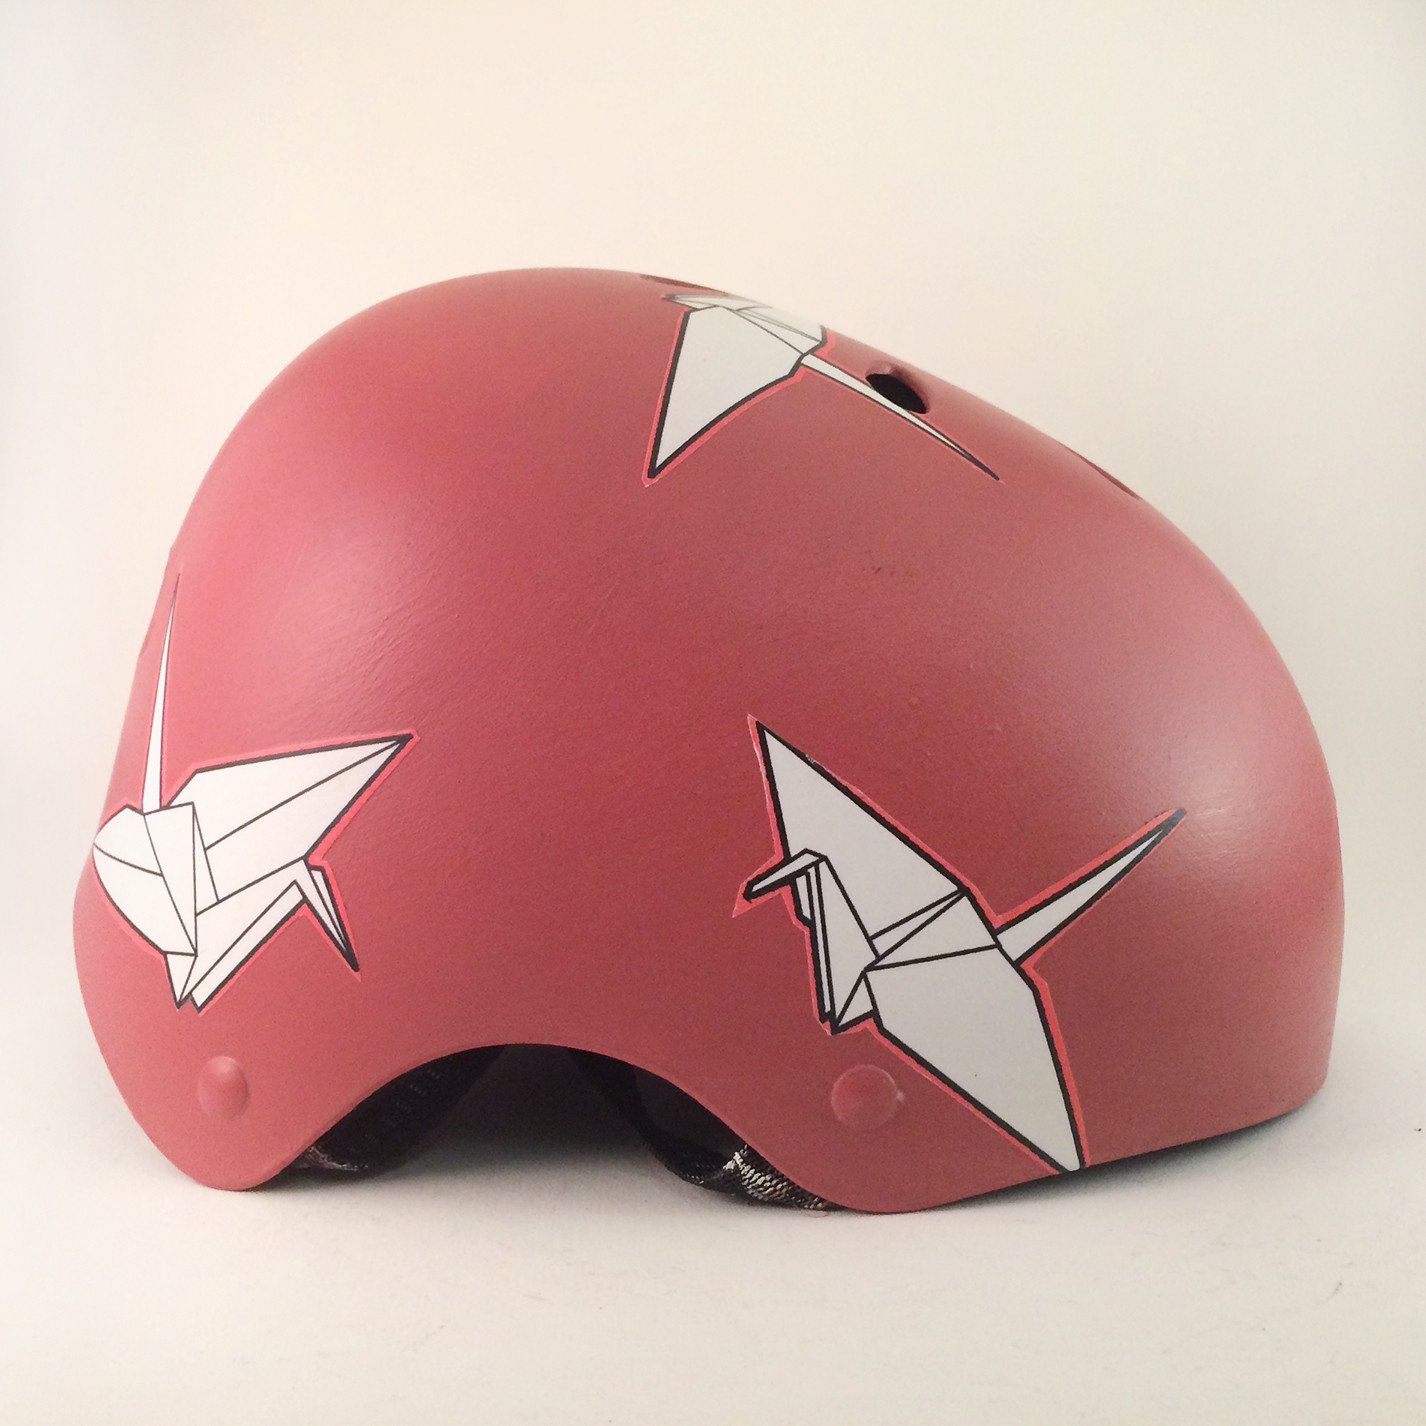 EGG Helmets These are mostly intended for children and are fully customizeable as far as skins and add ons like the princess crown devil horns o…